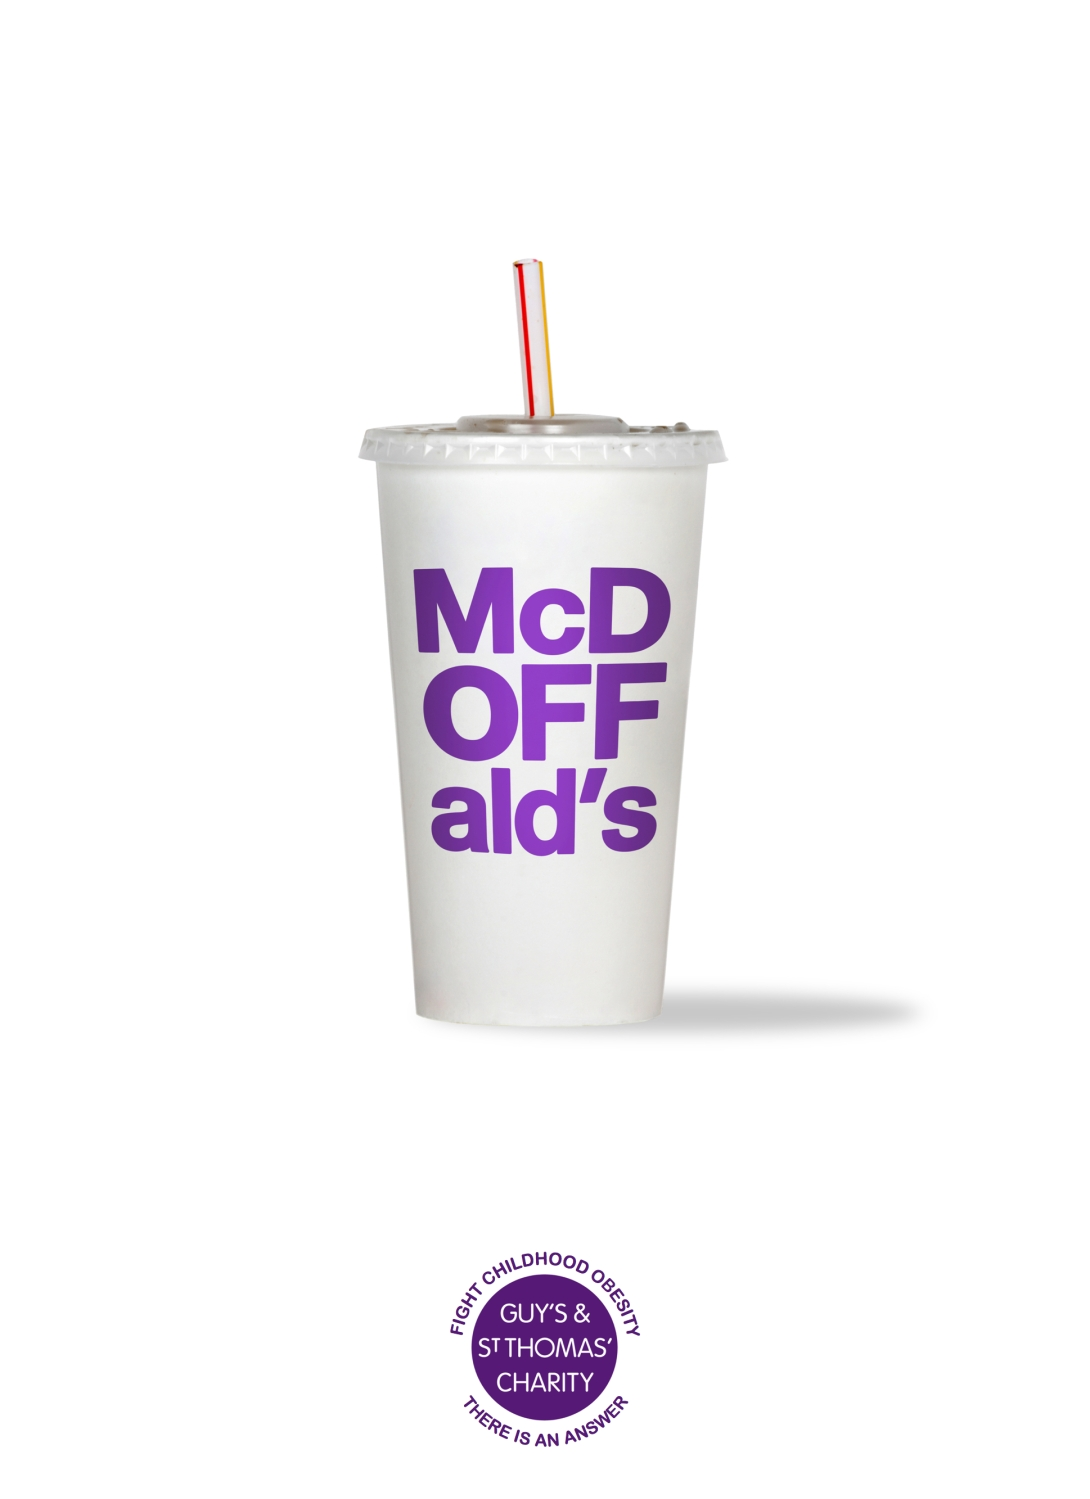 Advertising concept for an obesity charity